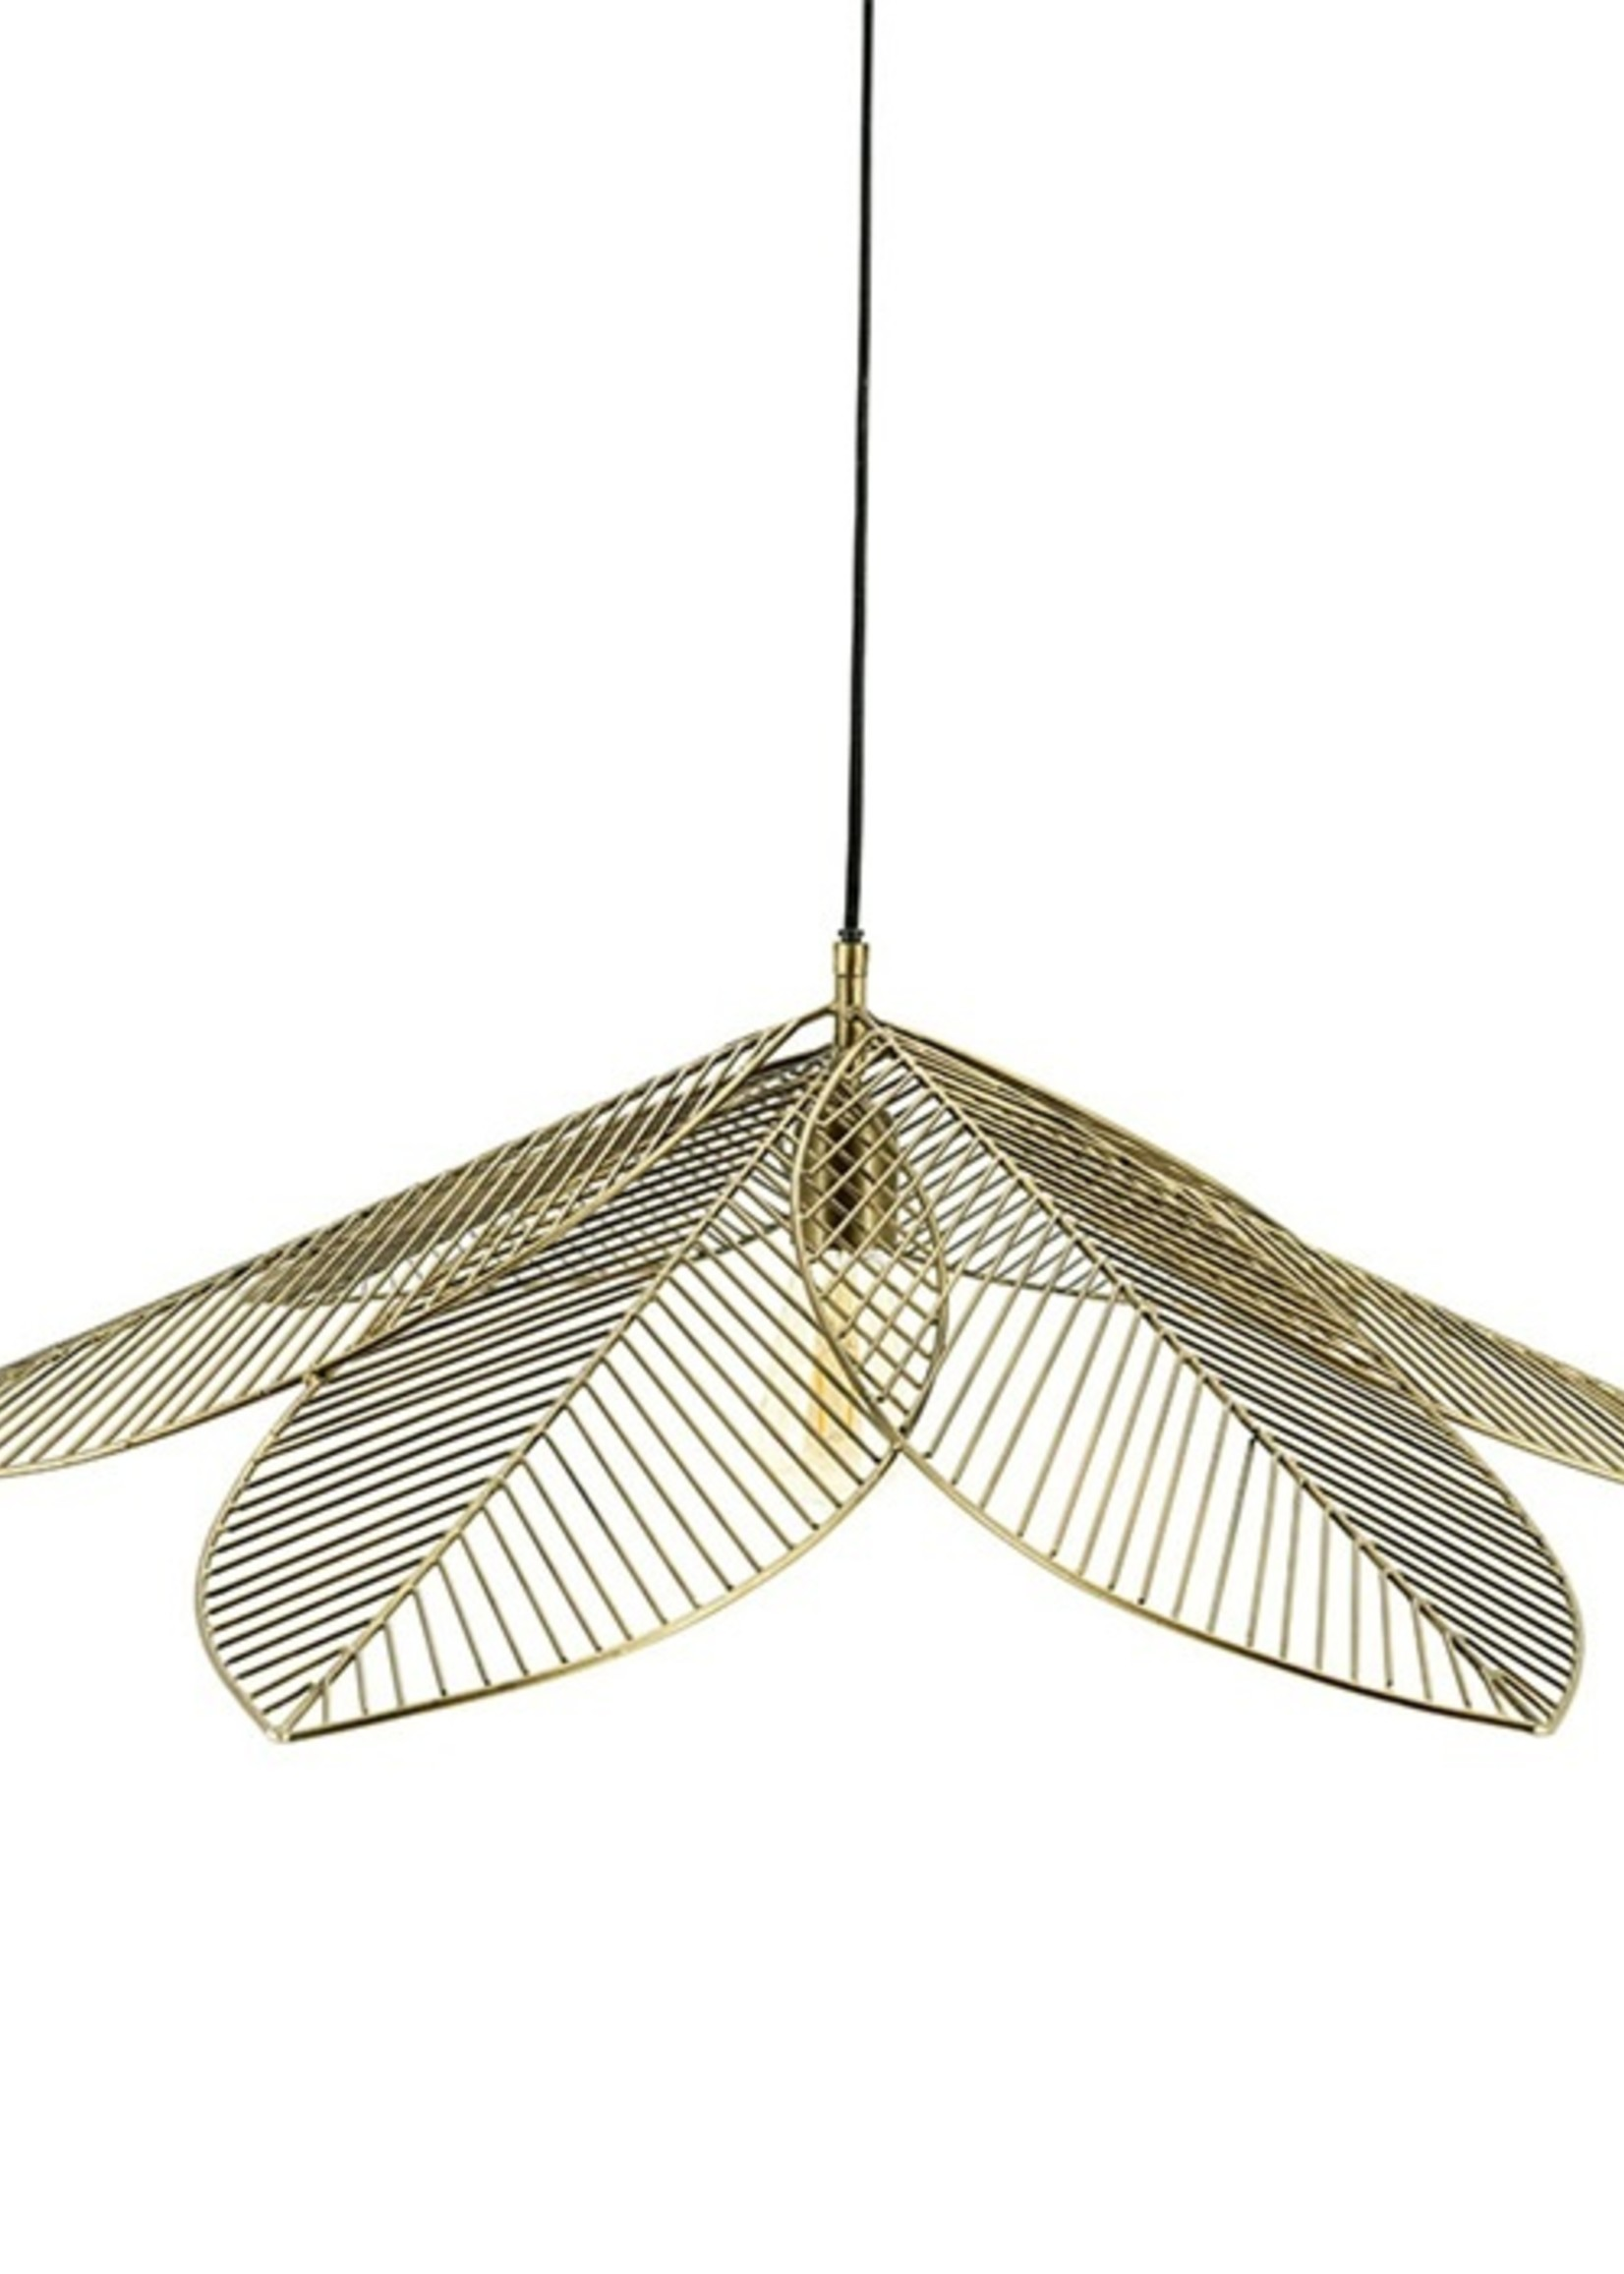 By Boo Lamp Archtiq bronze